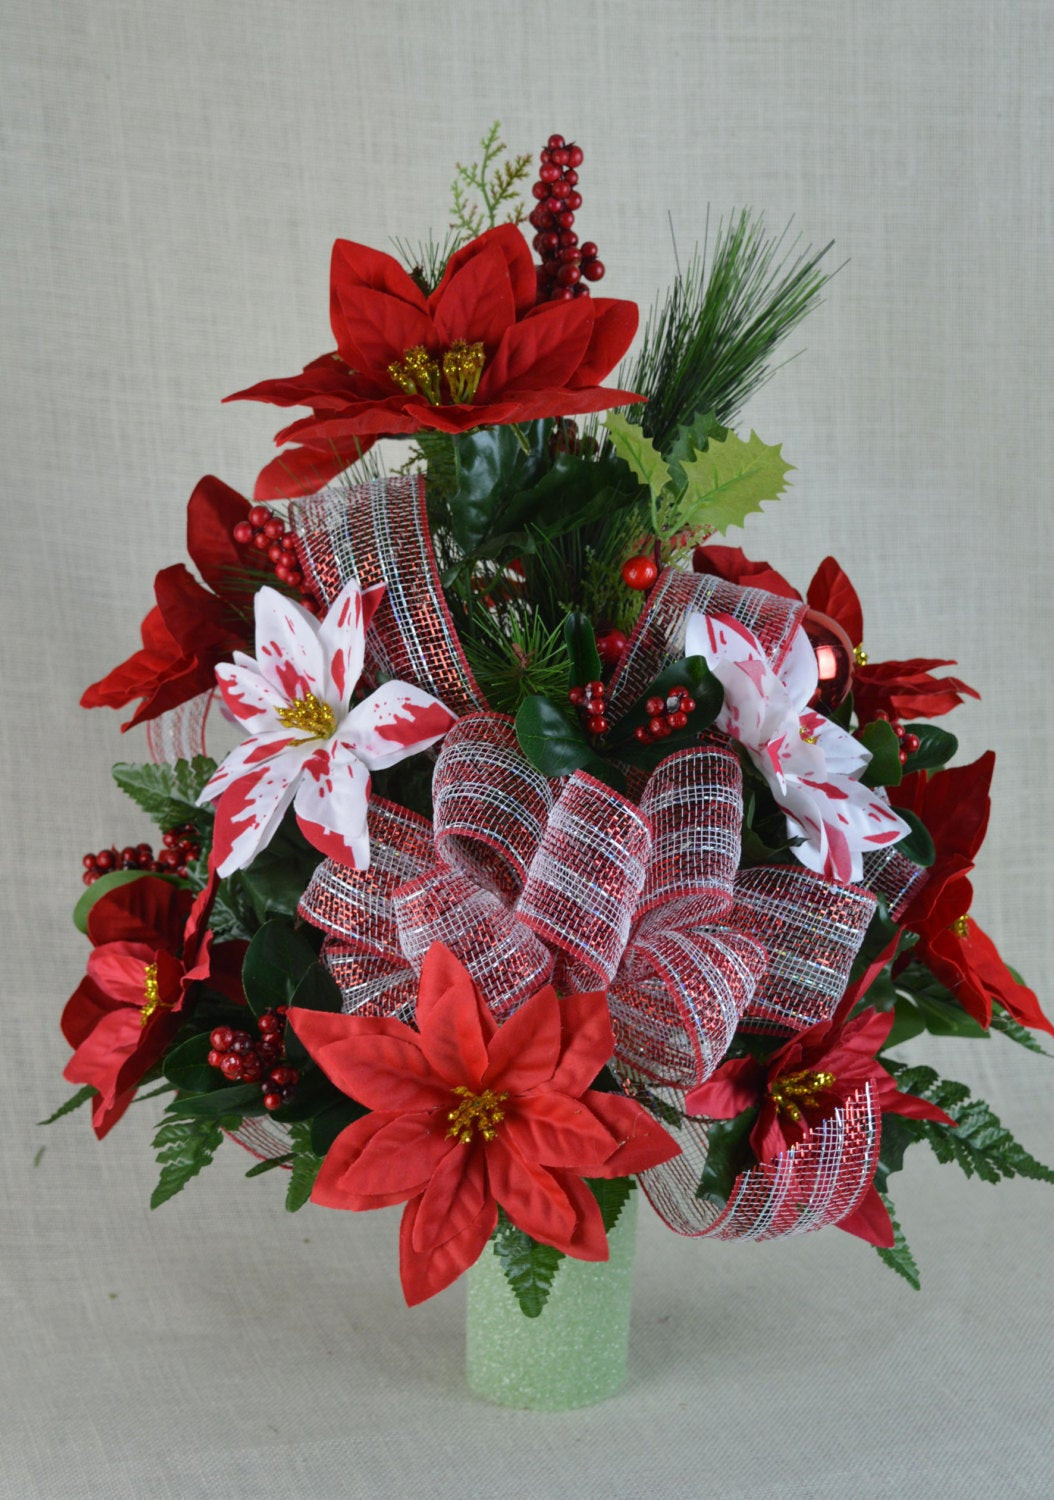 Christmas Artificial Flower Arrangements  NO CC005 Holiday Christmas Silk Flower Cemetery by